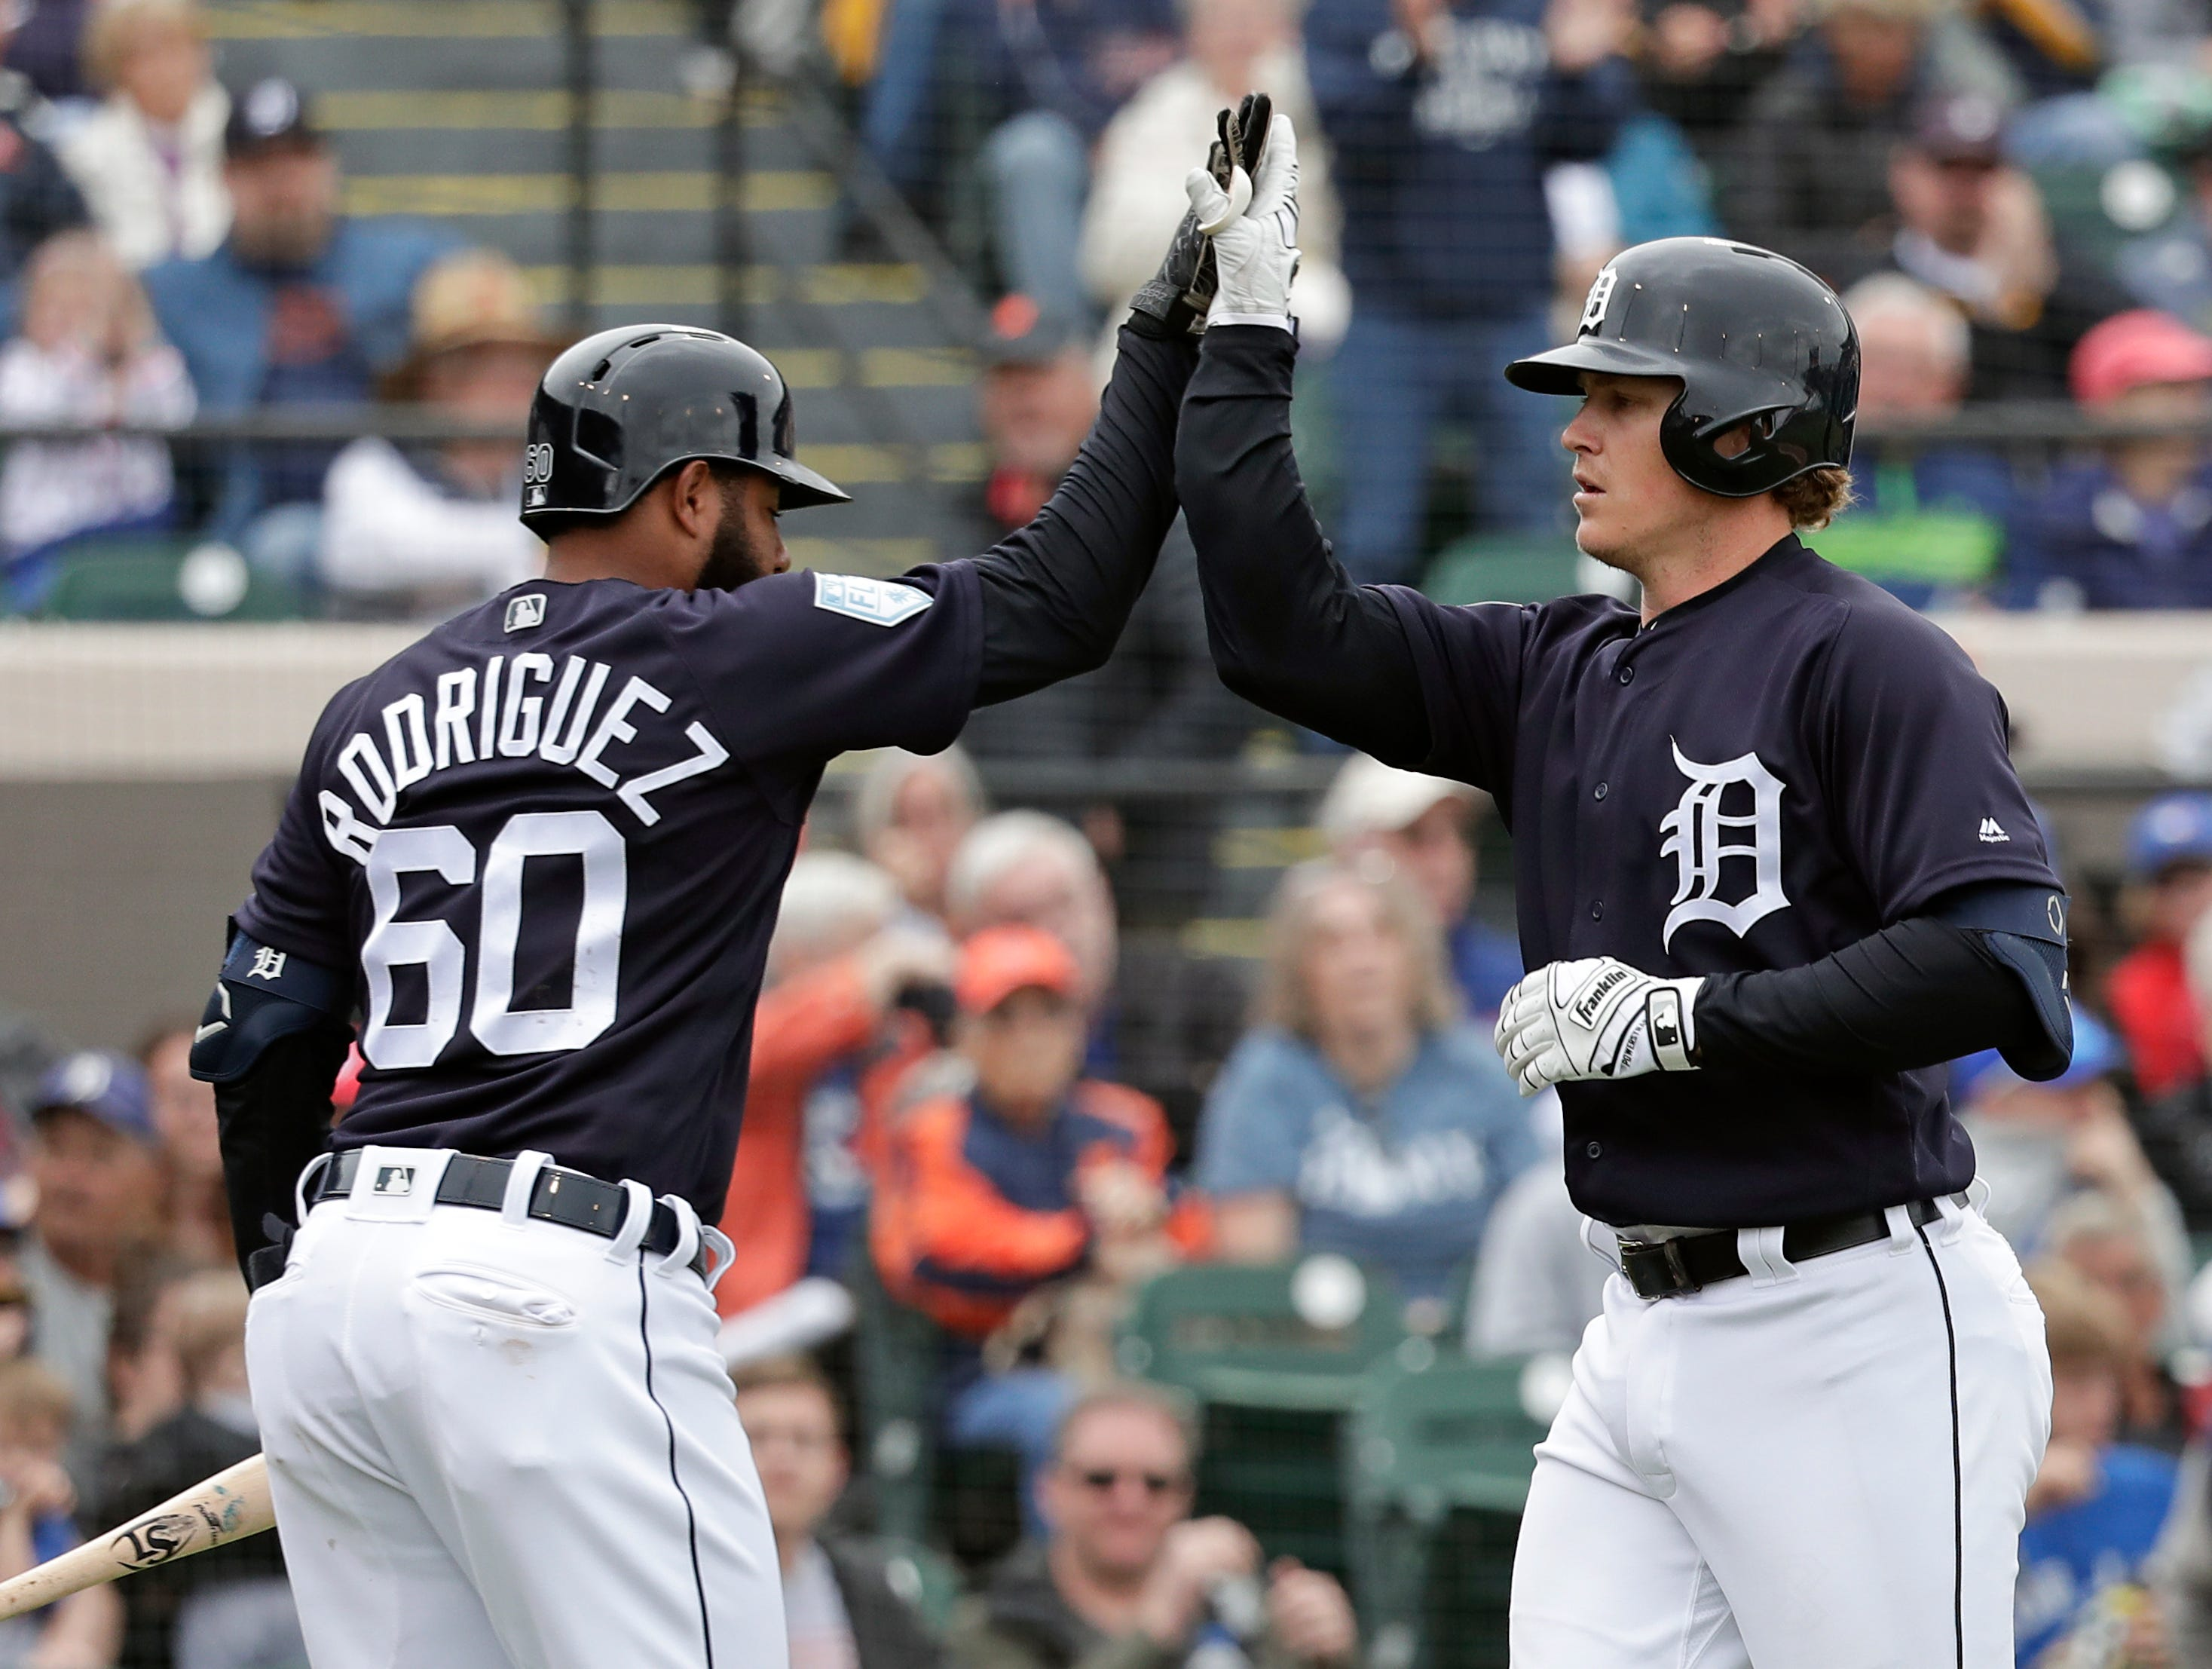 Detroit Tigers' Brandon Dixon, right, gets a high-five from Ronny Rodriguez (60) as he heads to the dugout after hitting a solo home run in the fourth inning of a spring training baseball game against the Toronto Blue Jays, Tuesday, March 5, 2019, in Lakeland.